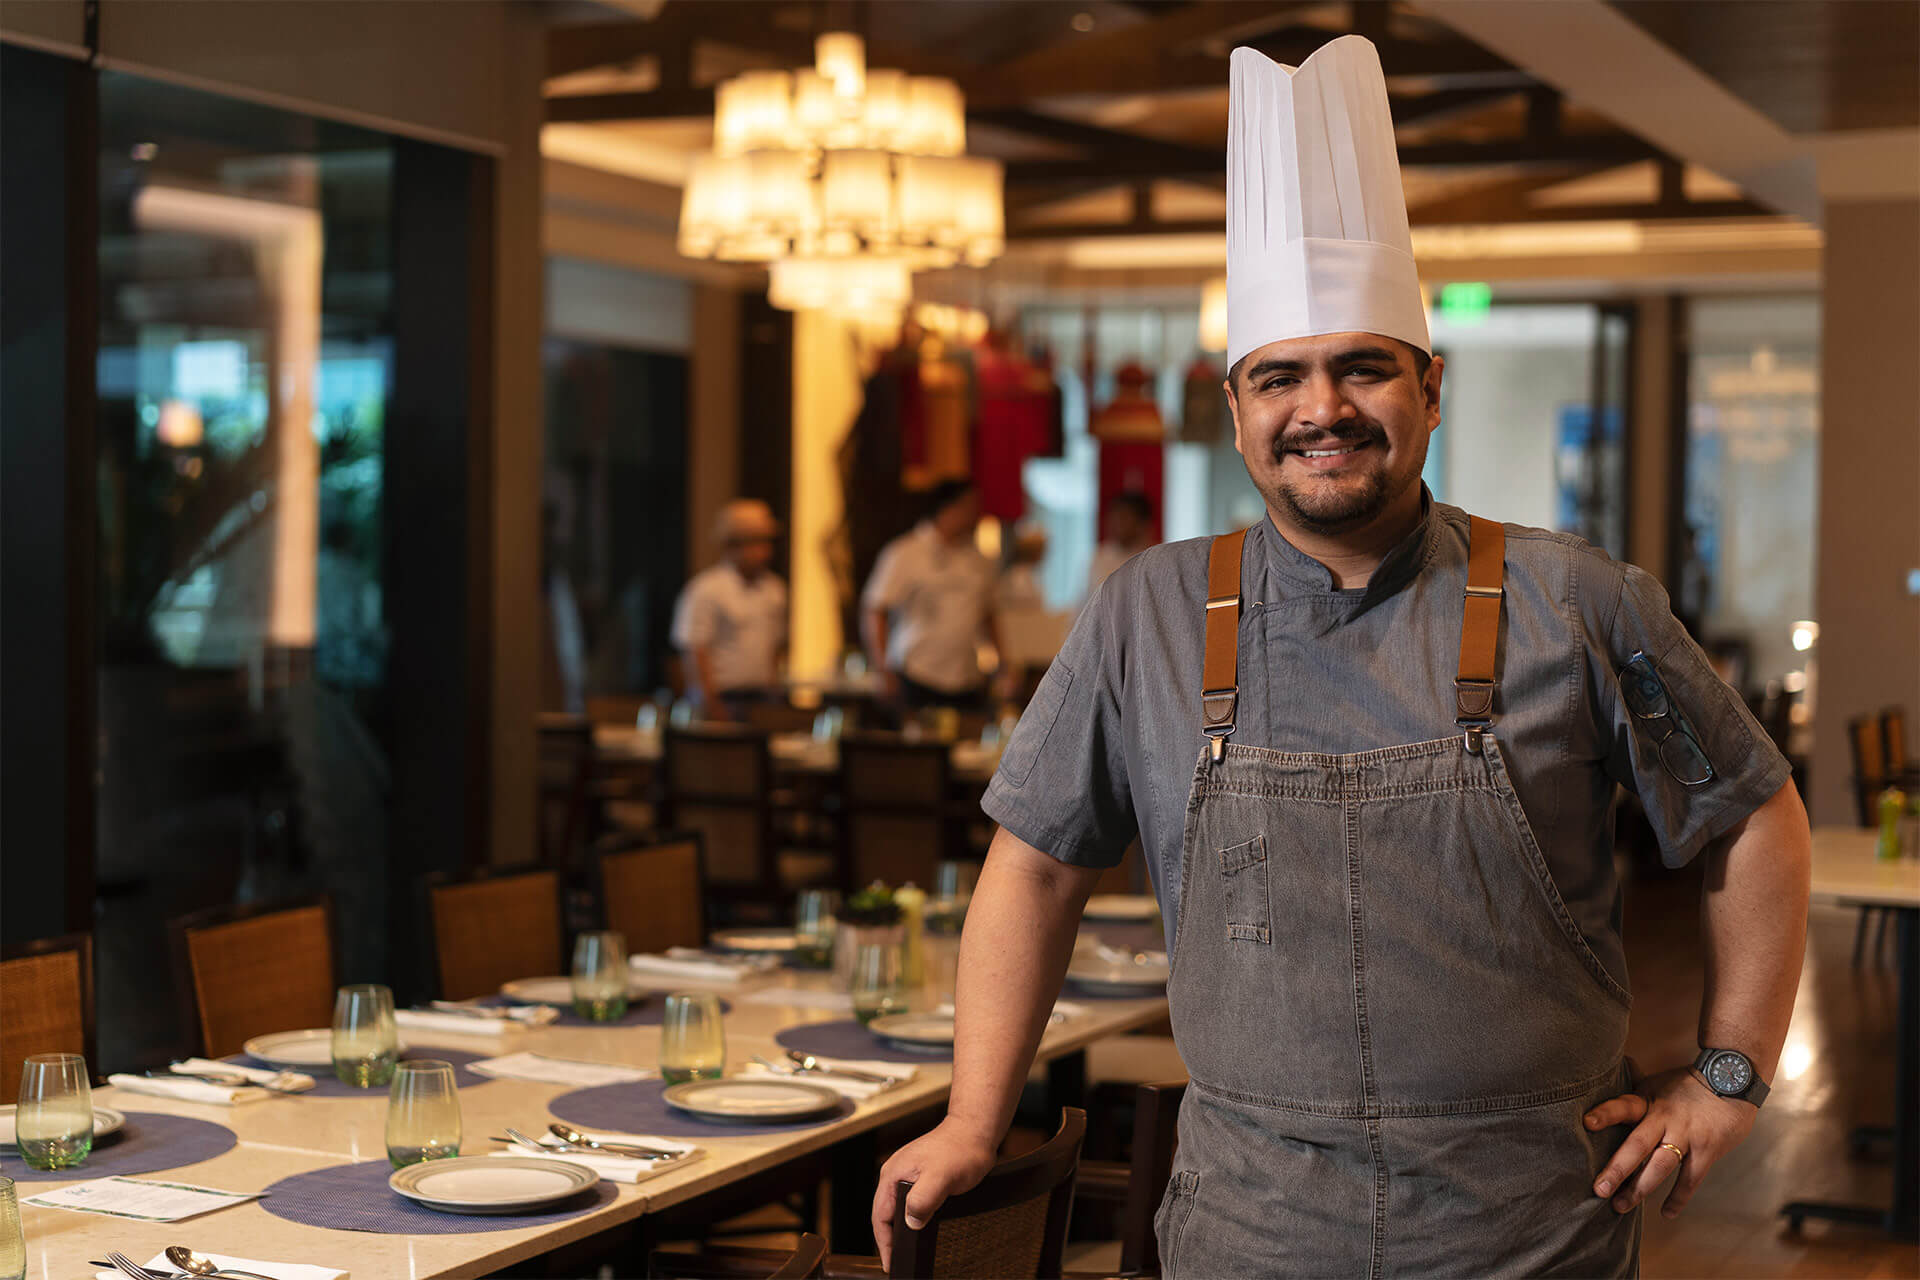 Carlo Huerta Echegaray, head chef of Samba at Shangri-La at the Fort, shares his experience as a Peruvian chef in the Philippines and what it means to connect our cultures through food.